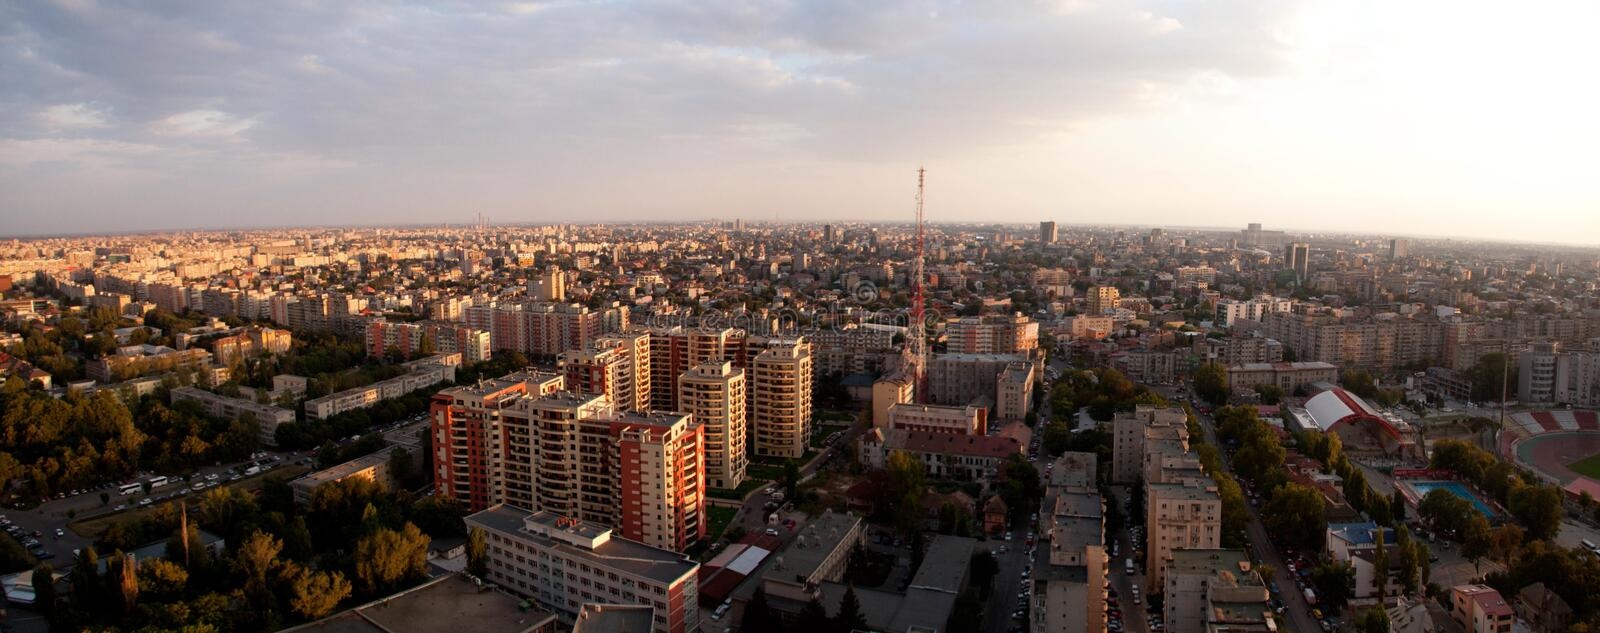 Bucharest panoramic sunset view royalty free stock image